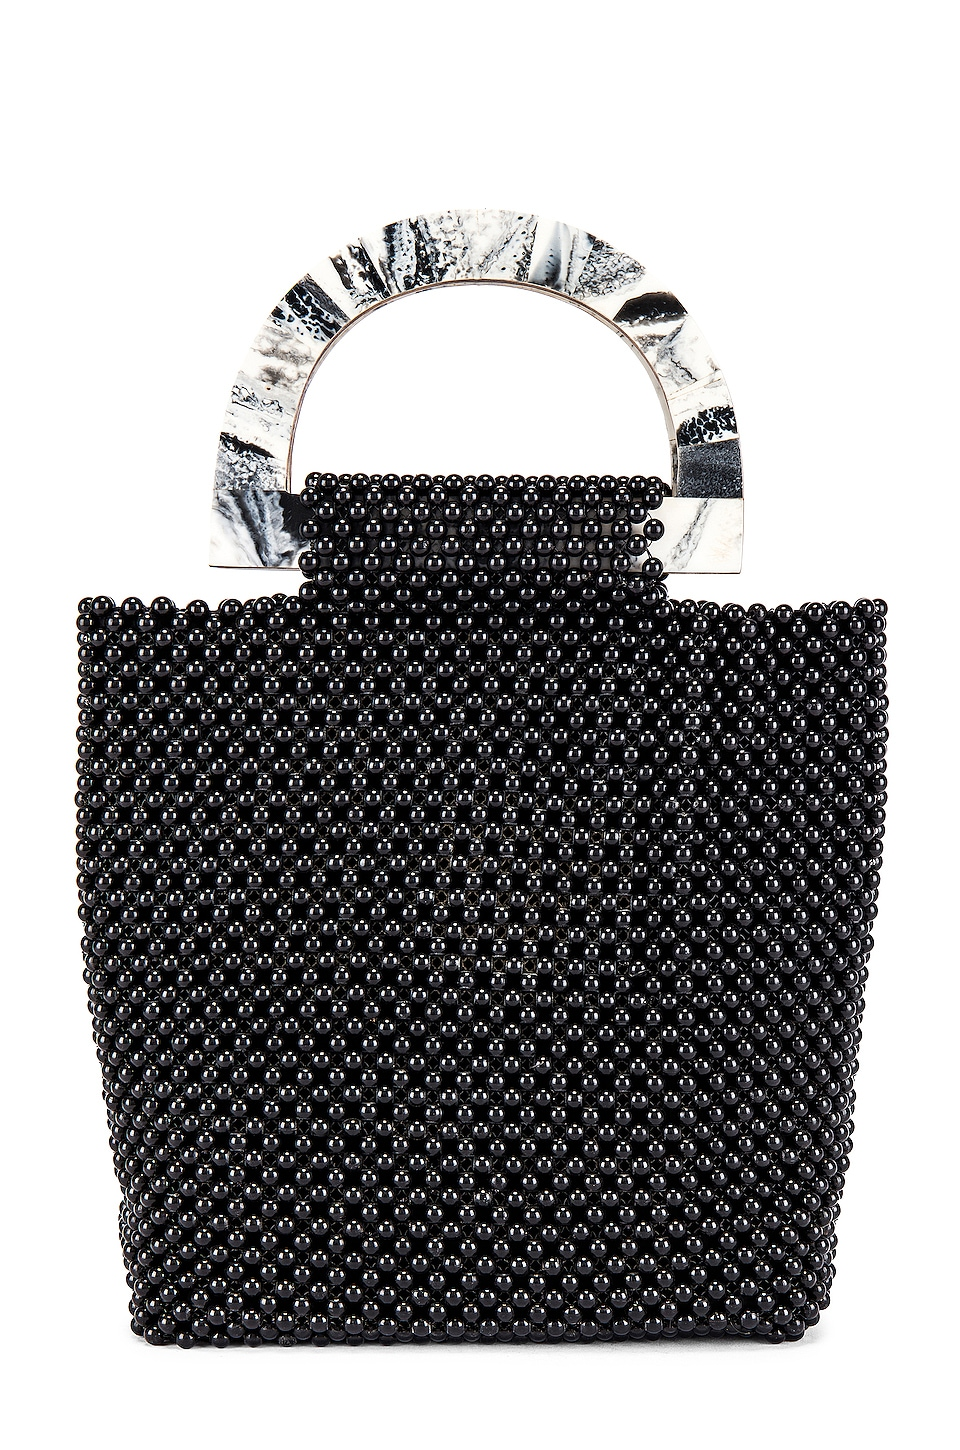 Cleobella Luma Tote in Black